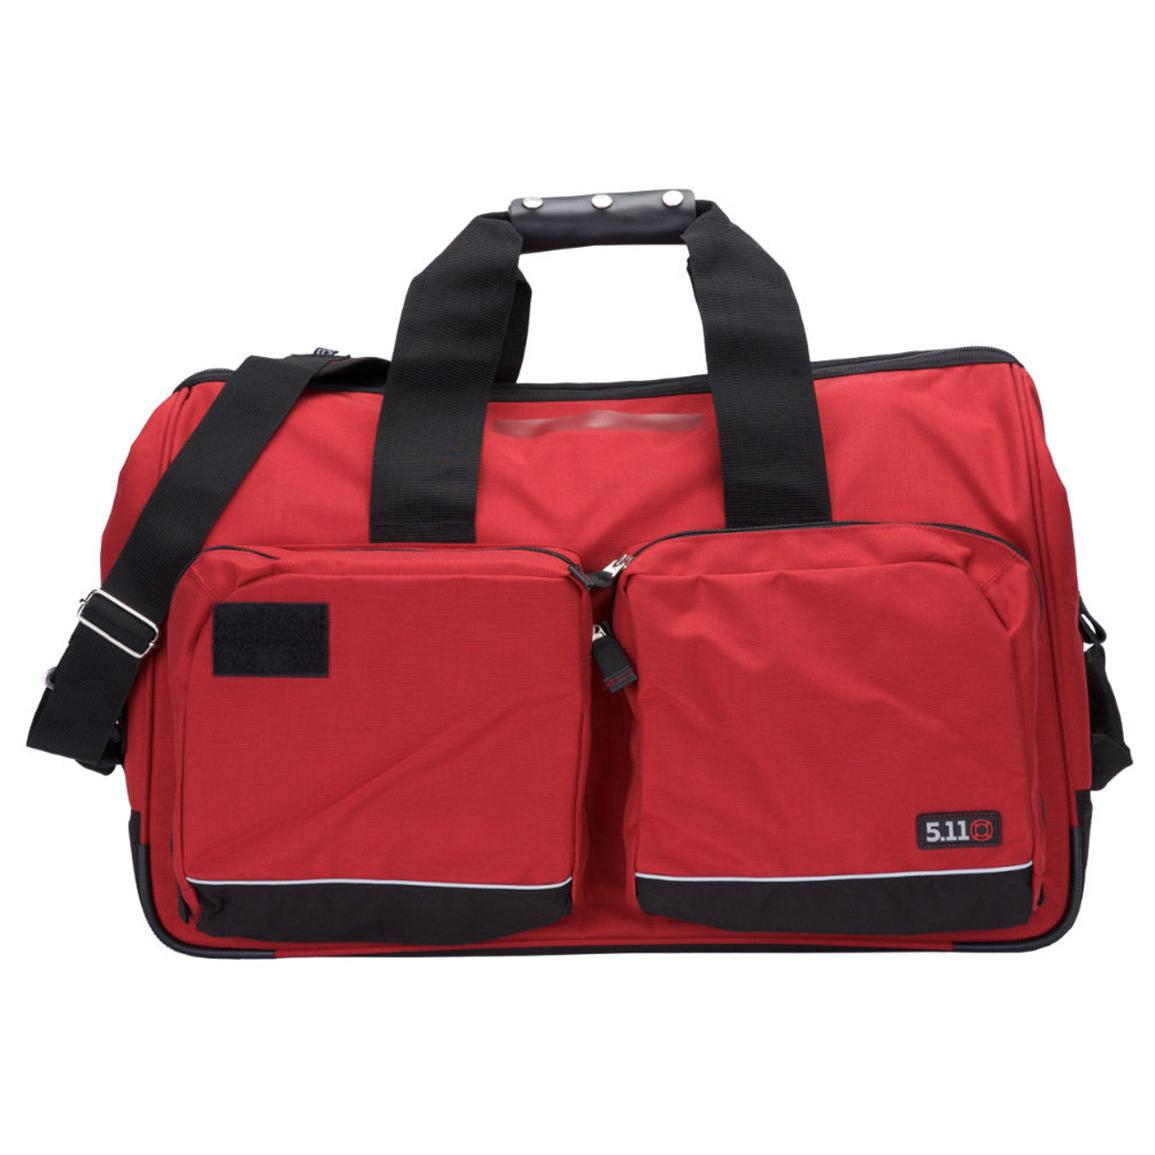 5.11 Tactical® Brush 5000 Wildland Bag, Fire Red